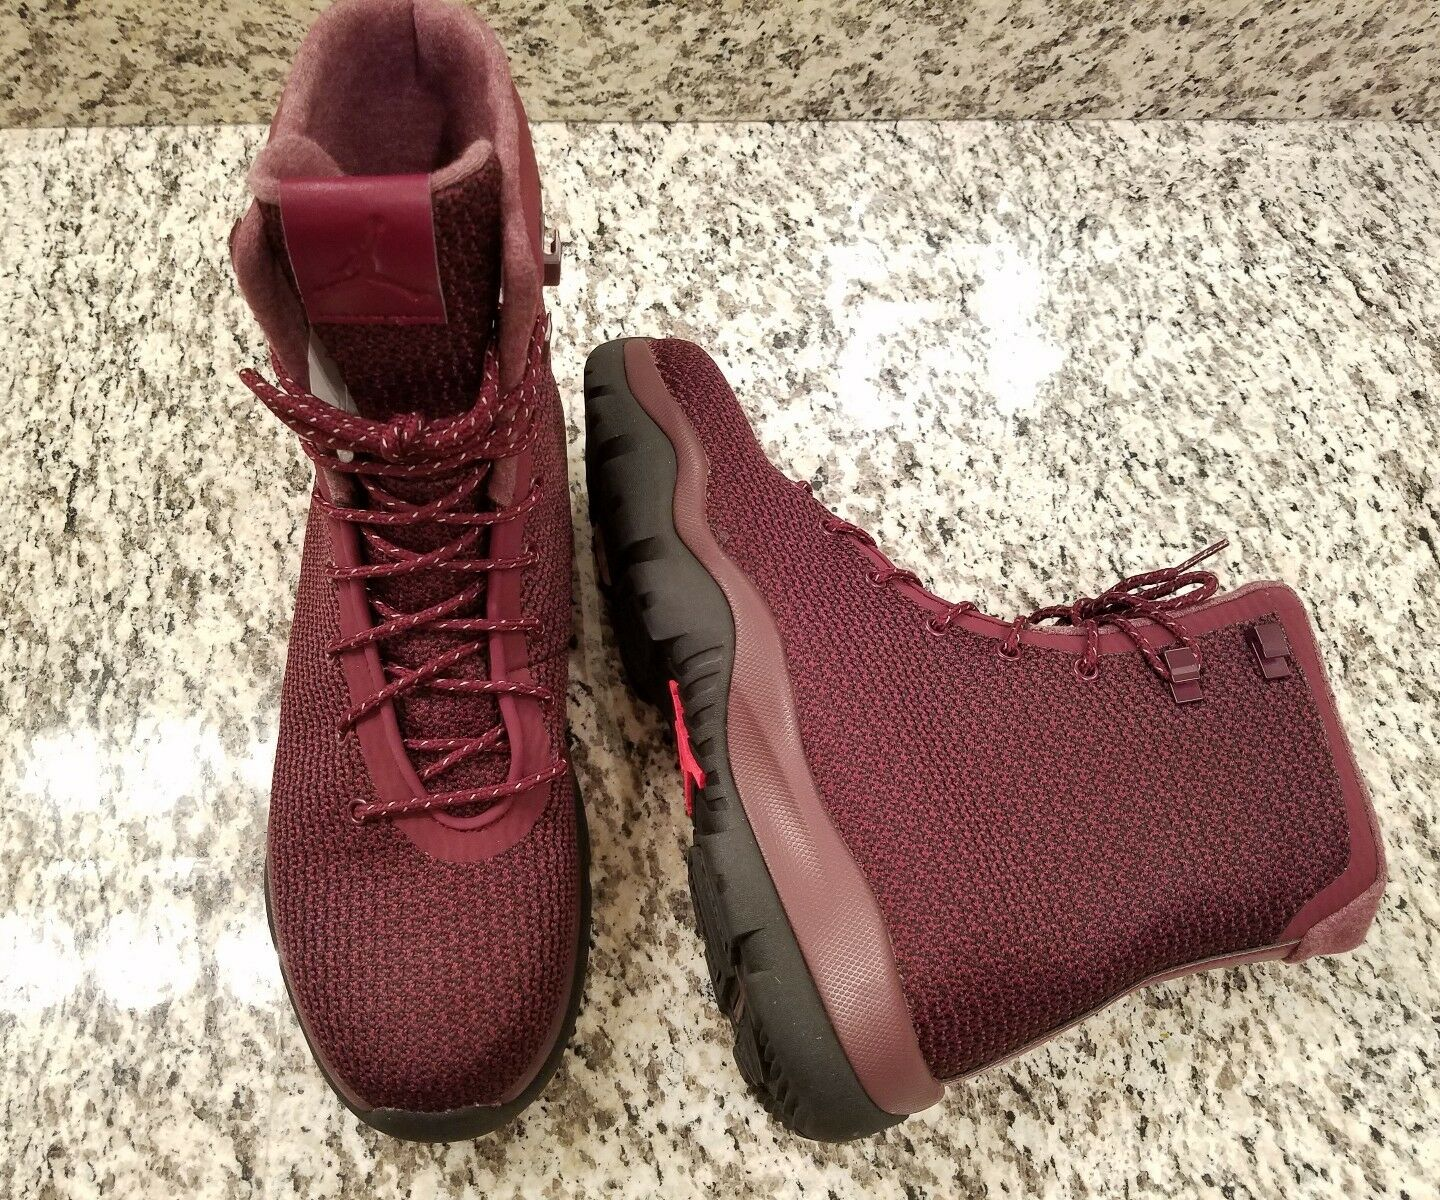 New Nike Air Jordan Future Boots 9.5 Maroon Burgundy Black 854554-600 waterproof